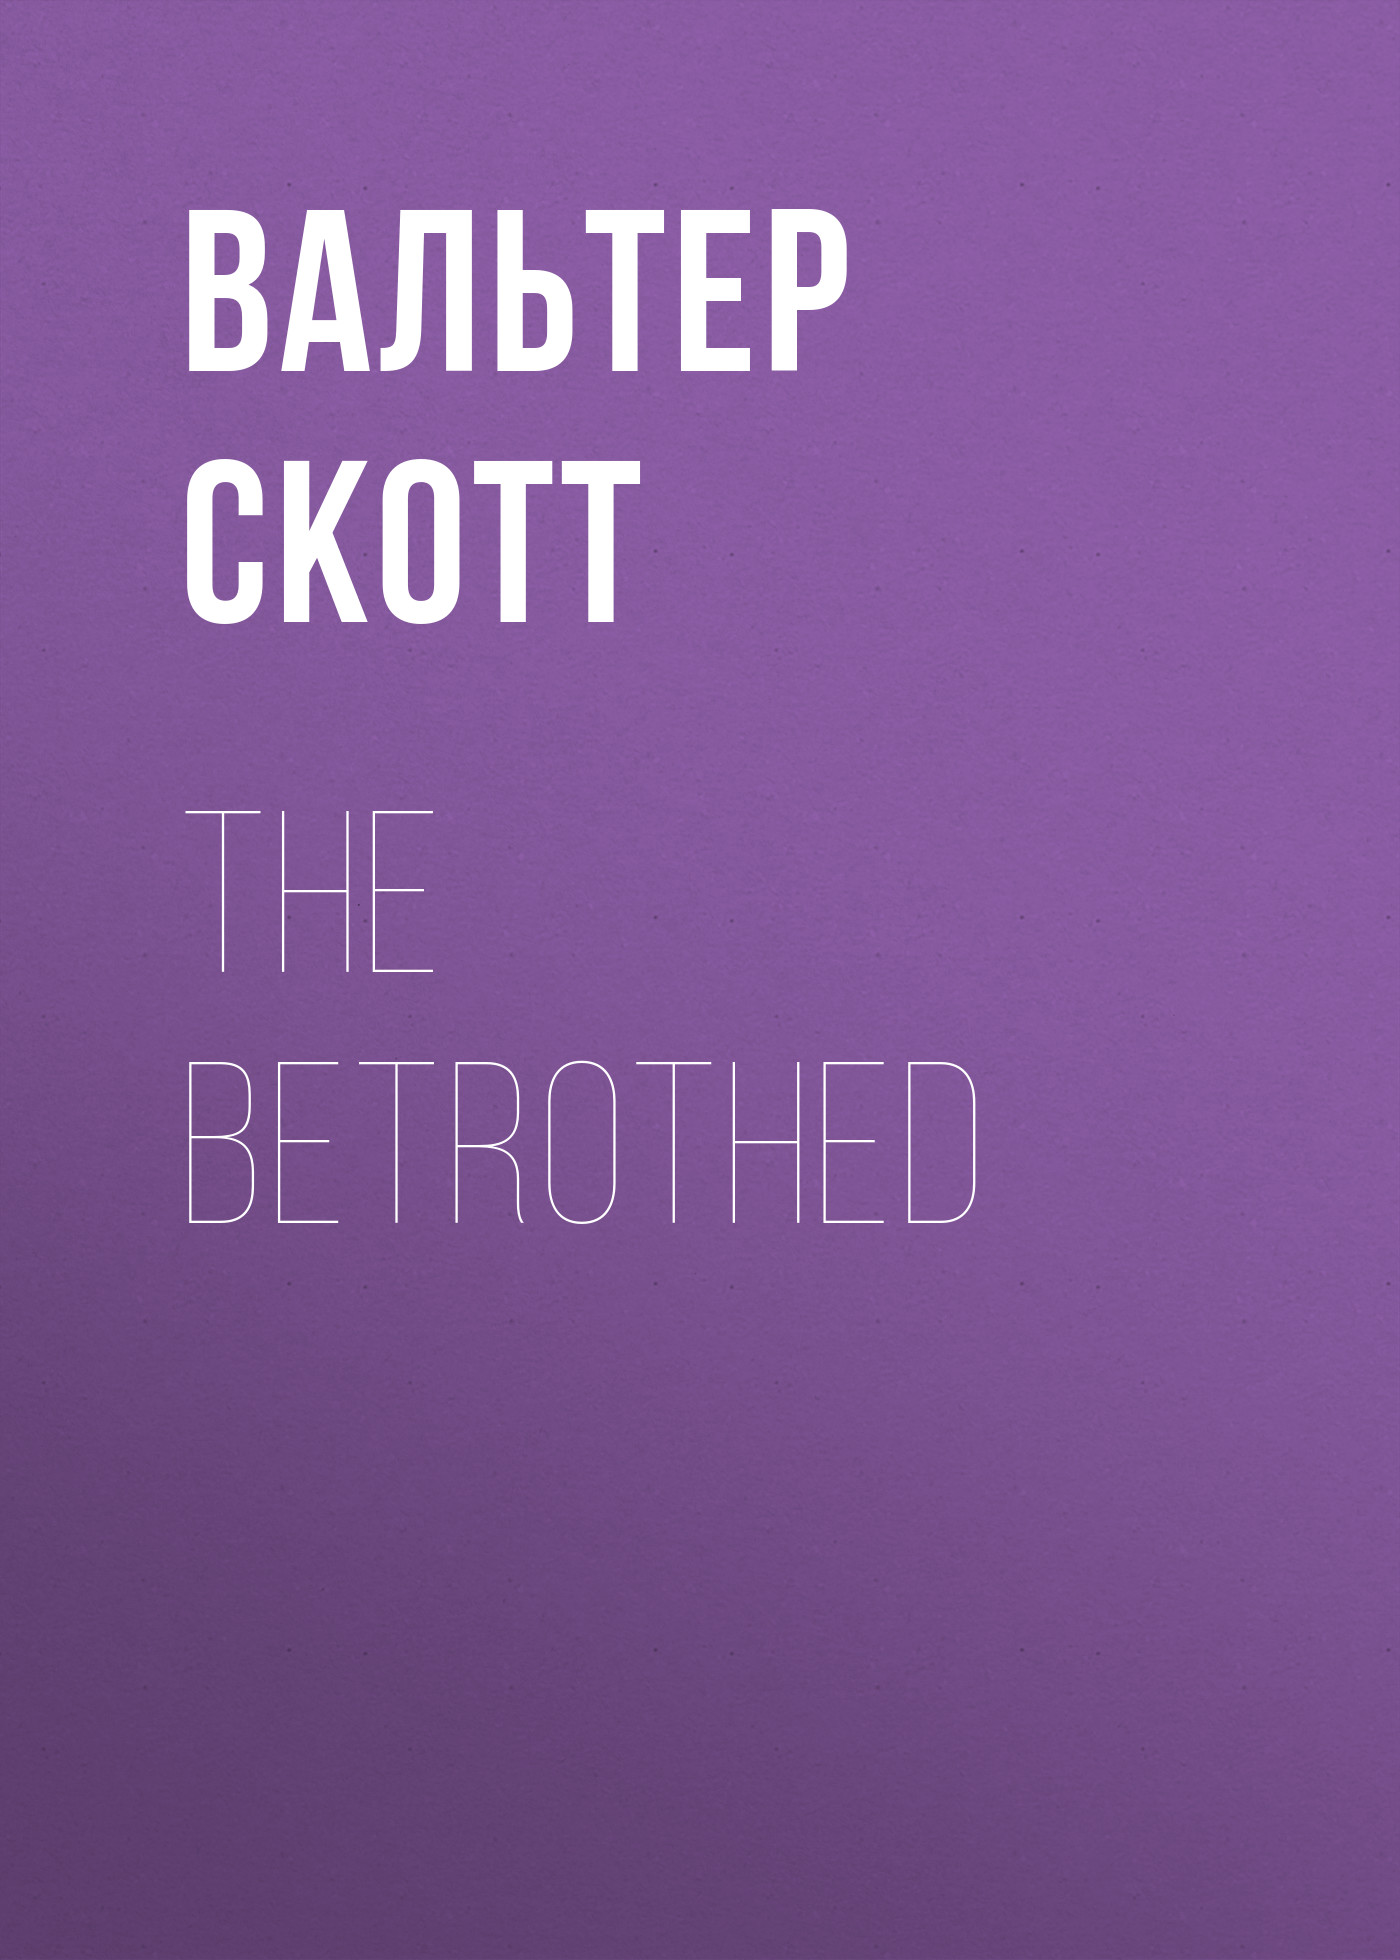 Вальтер Скотт The Betrothed вальтер скотт the bride of lammermoor